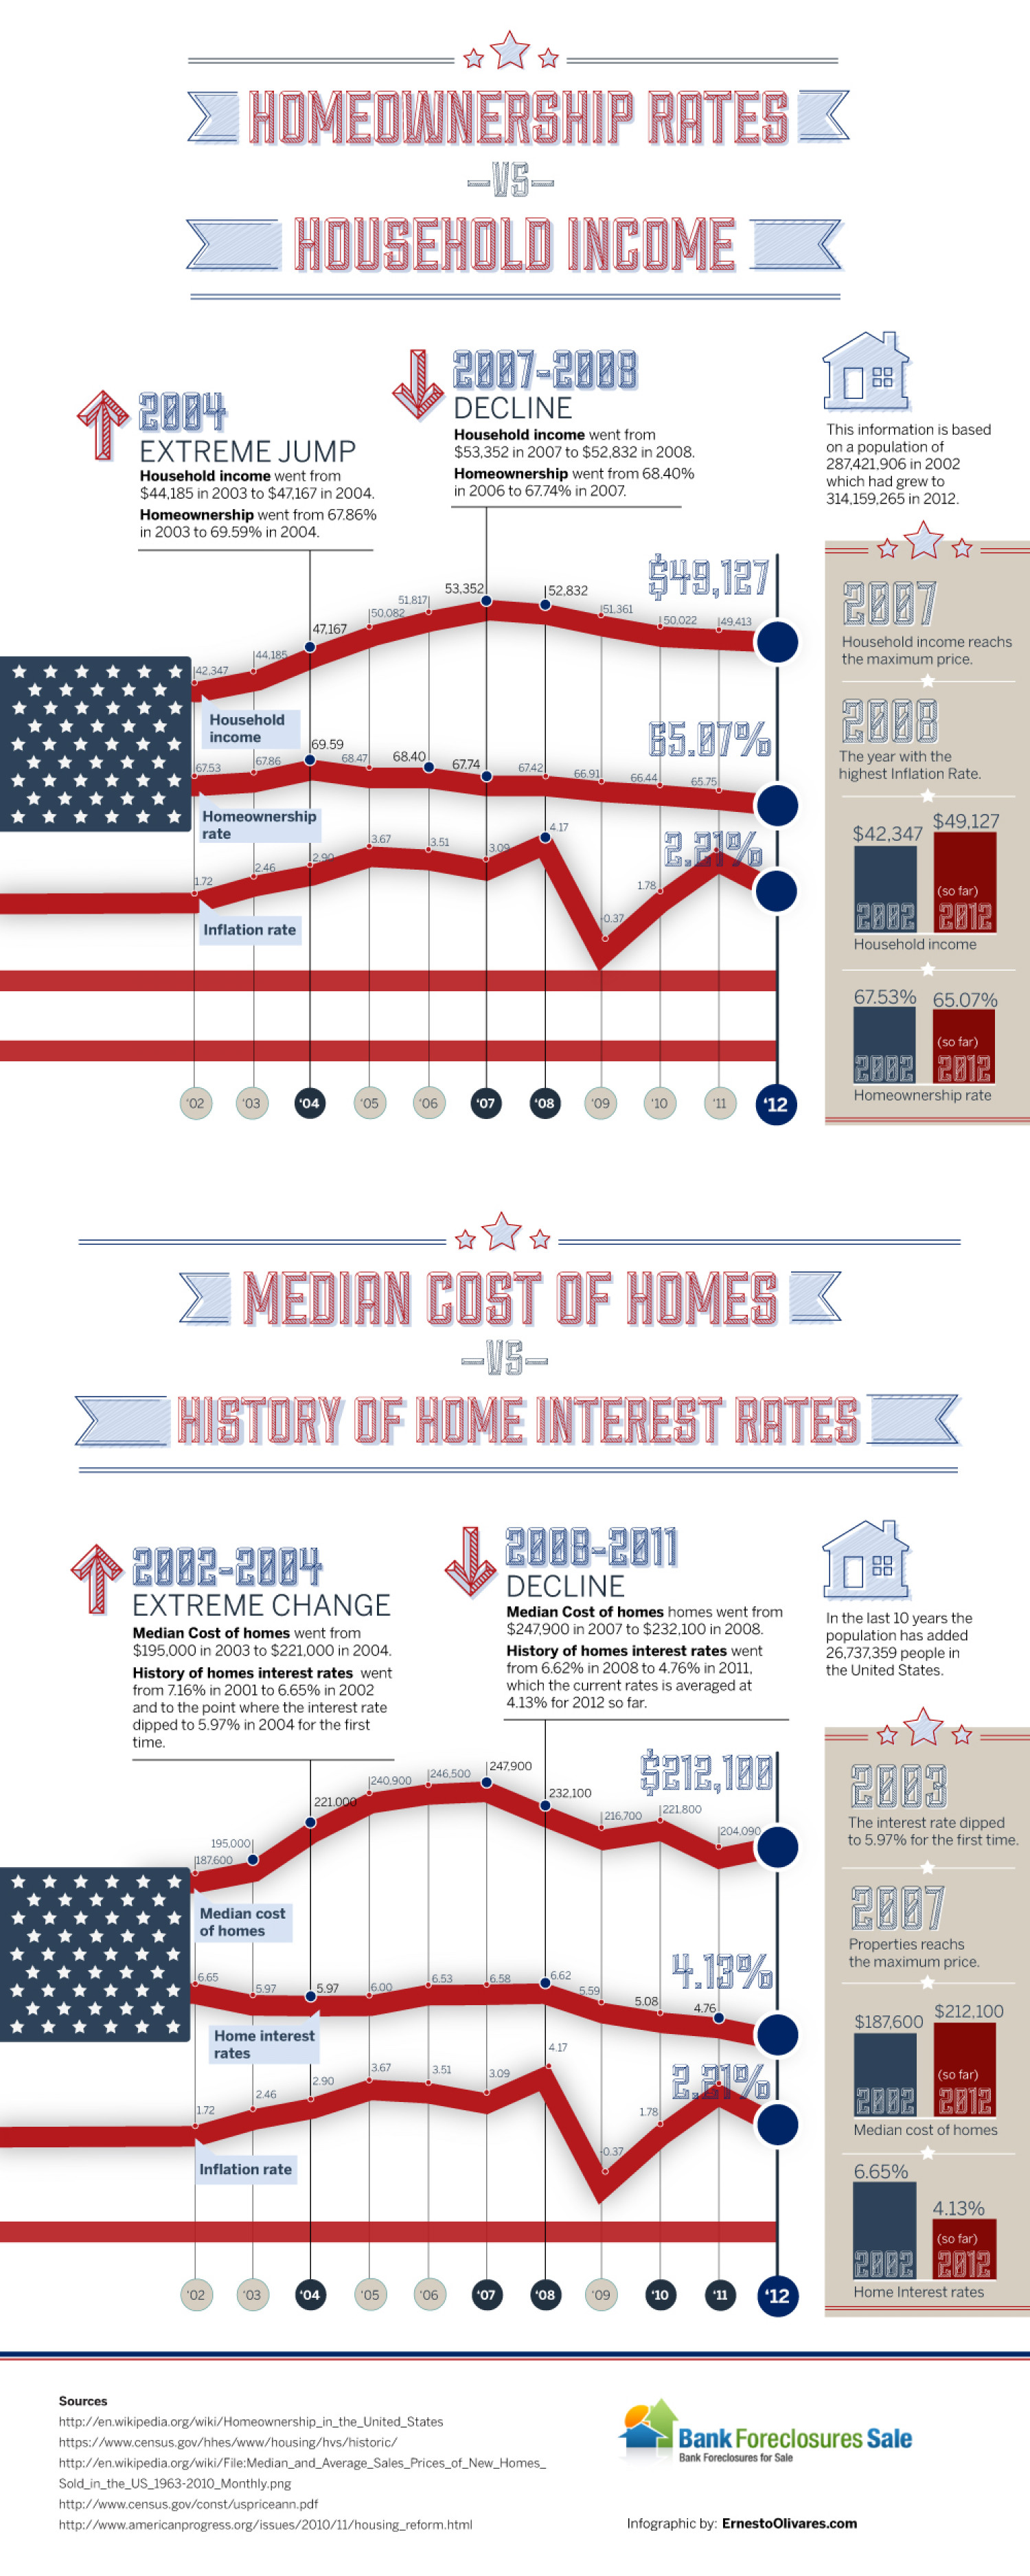 Revealing relationship between homeownership and household income Infographic